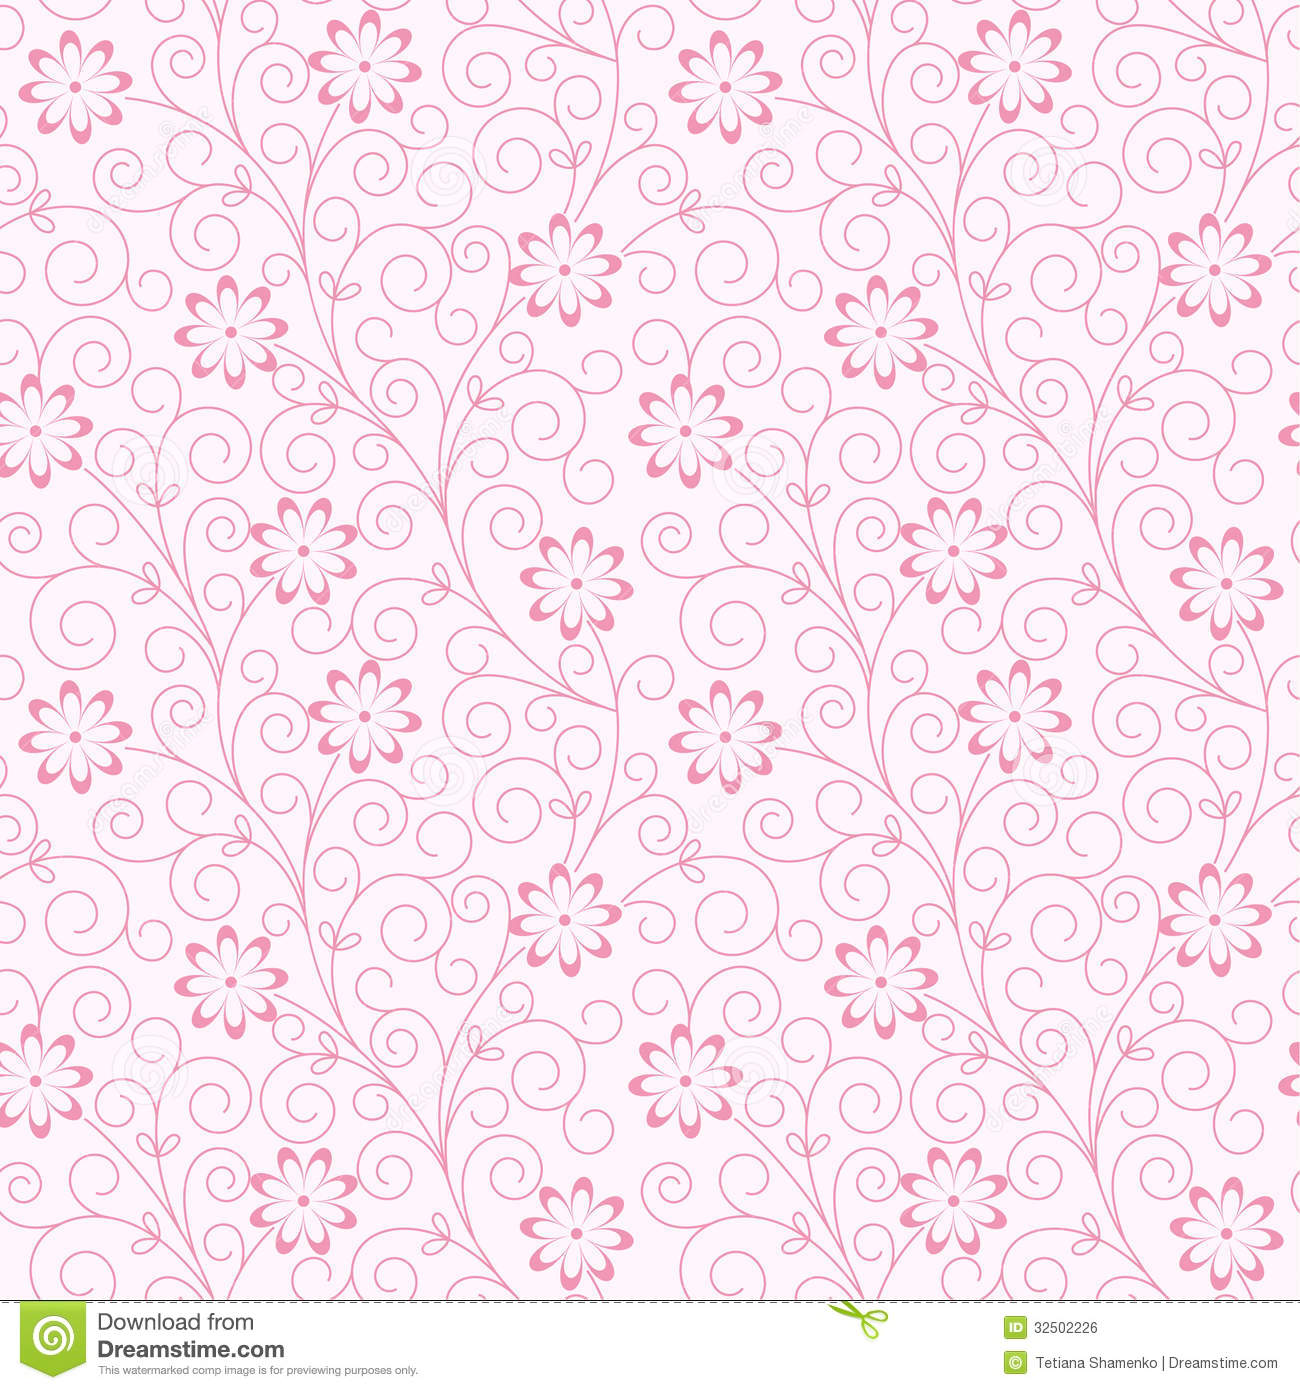 Cute Vintage Floral Wallpaper Seamless Abstract Floral Background Royalty Free Stock